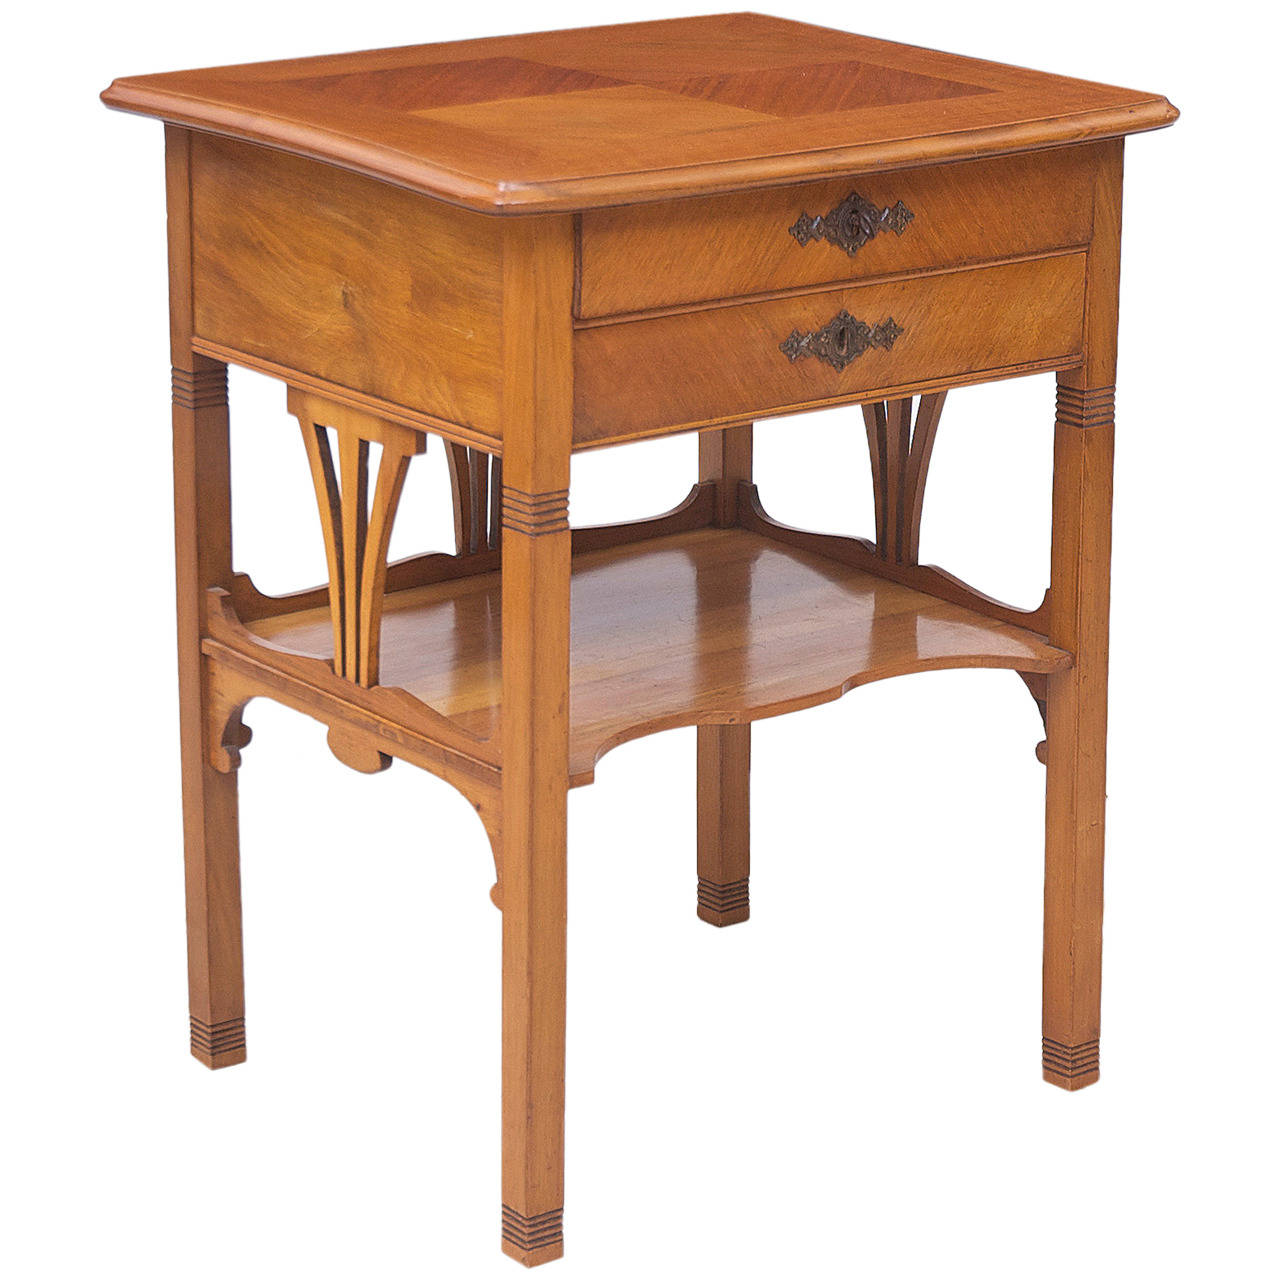 Jugendstil Side Table In Walnut And Walnut Parquetry Bonnin Ashley Antiques Miami Fl